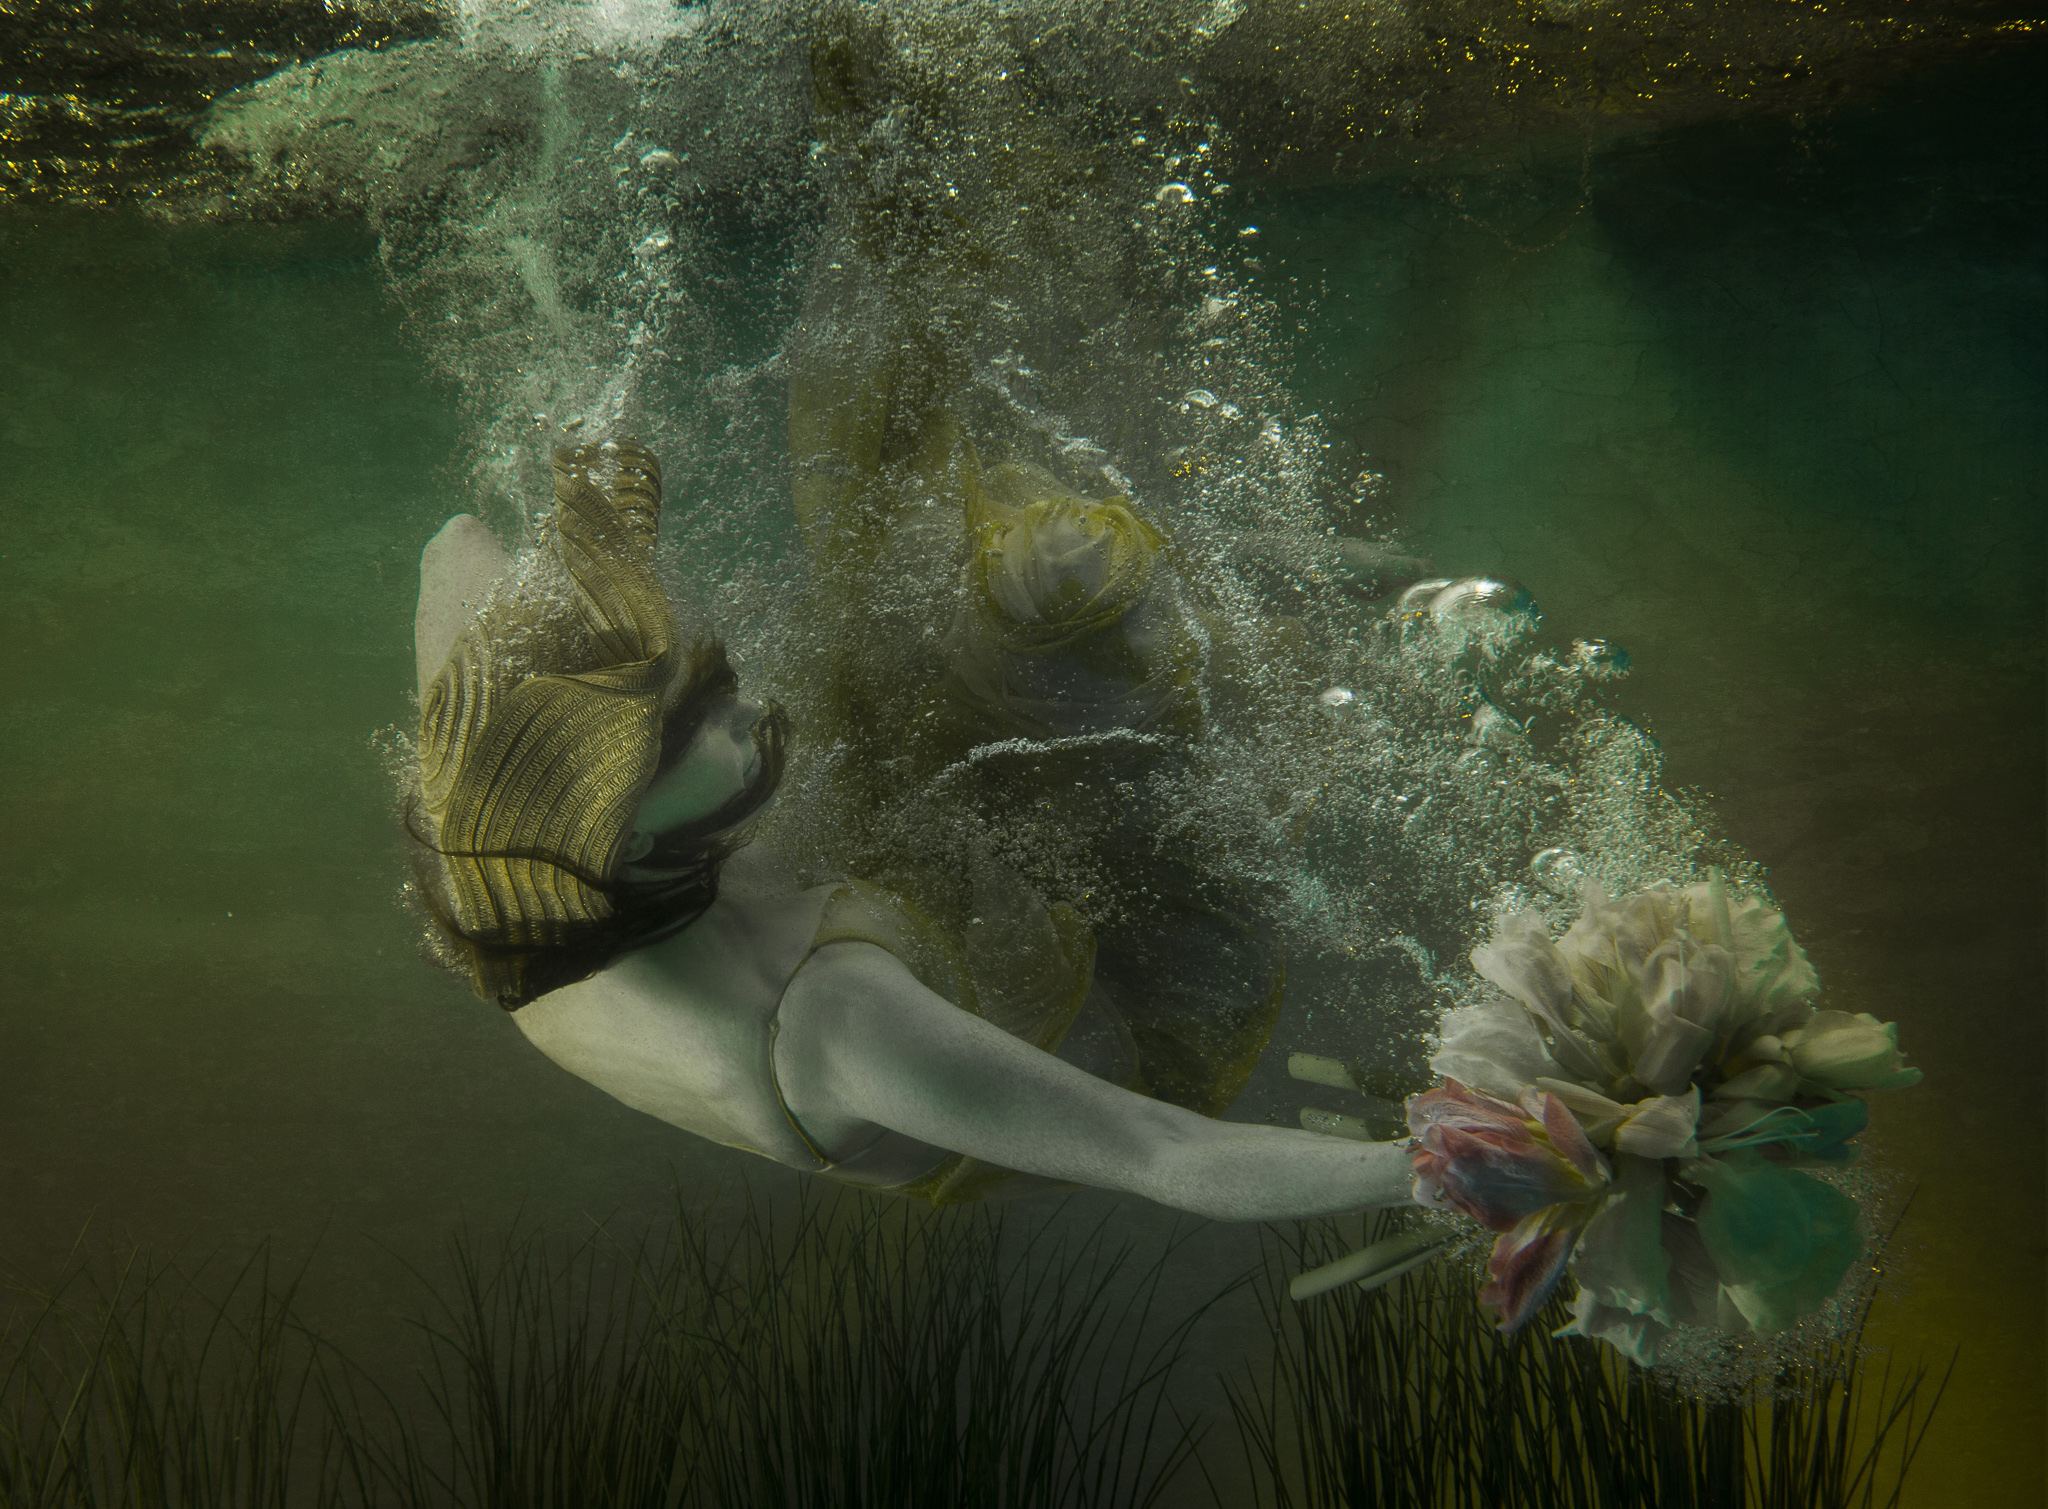 Underwater Fine Art Photography by Cheng Han